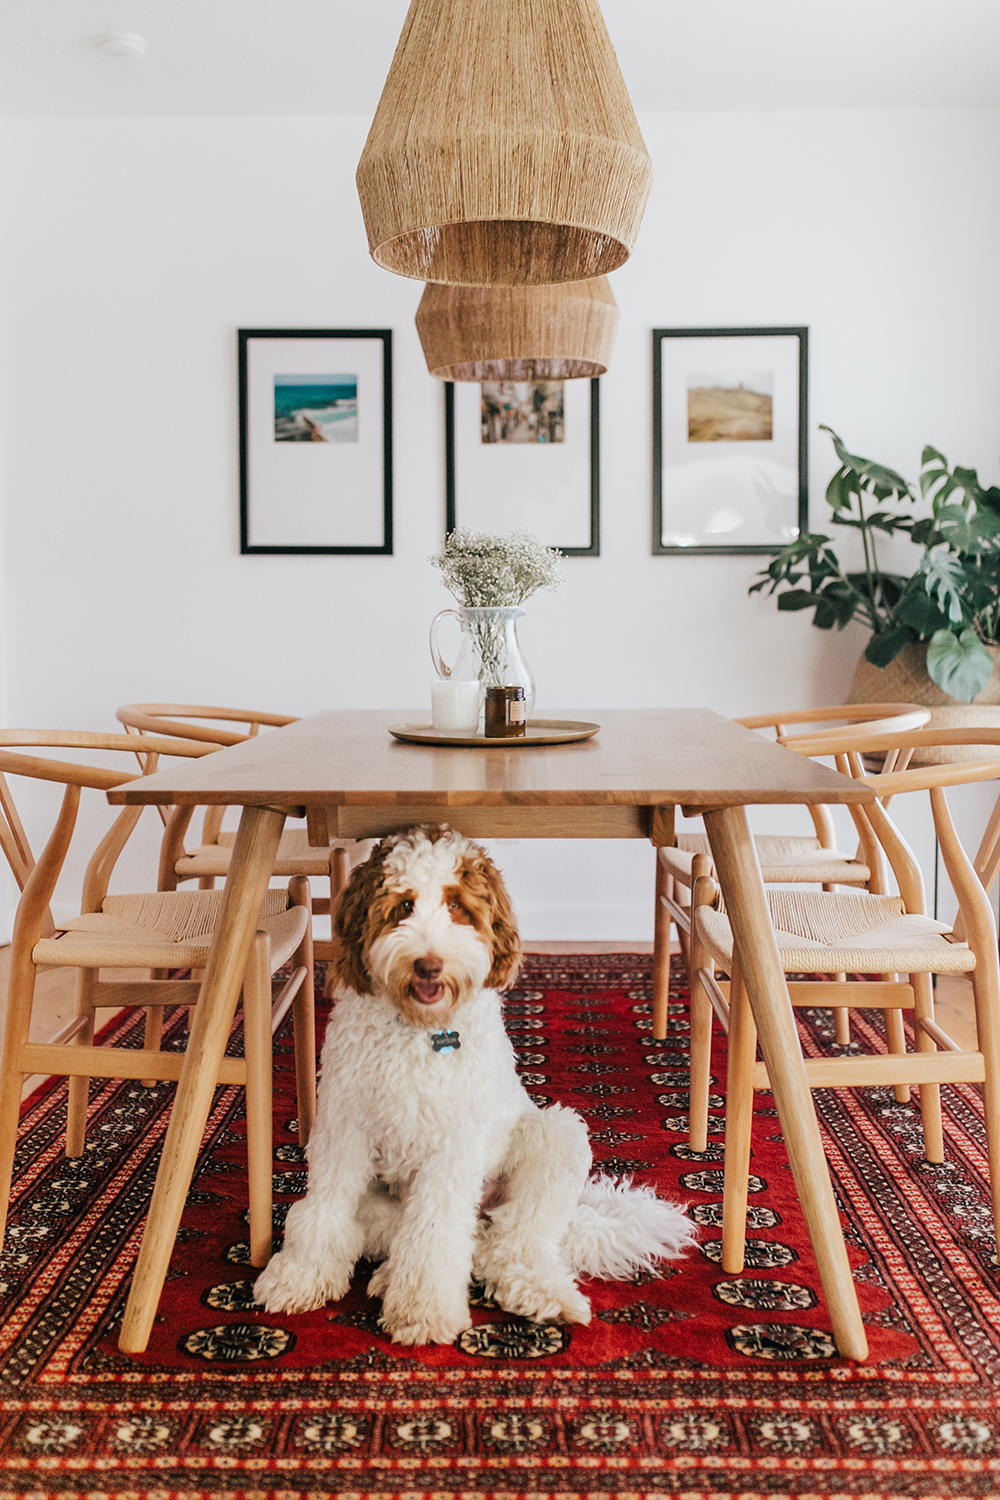 livvyland-blog-olivia-watson-austin-texas-lifestyle-blogger-modern-bohemian-bungalow-dining-room-kitchen-1